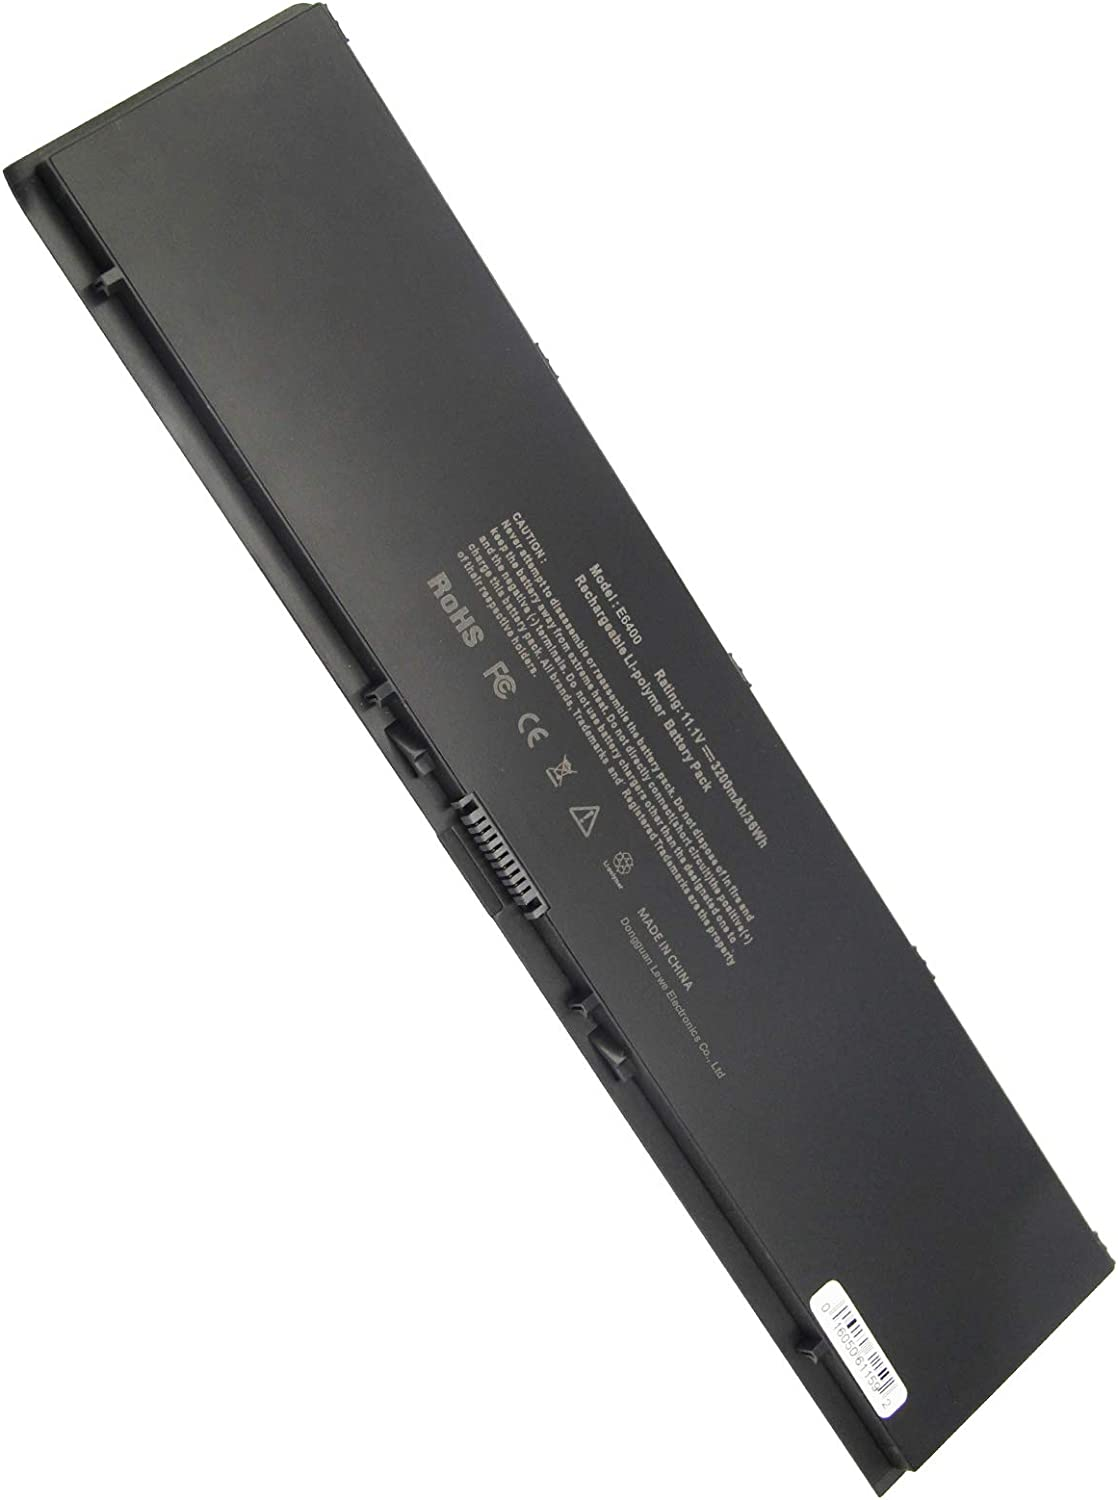 New Replacement Laptop Battery for DELL Latitude 14 7000 Series, 14 7000 Series-E7440, E7440 Series, E7440 Touch Series [Li-ion 6-Cell 3200mAh 11.1V]